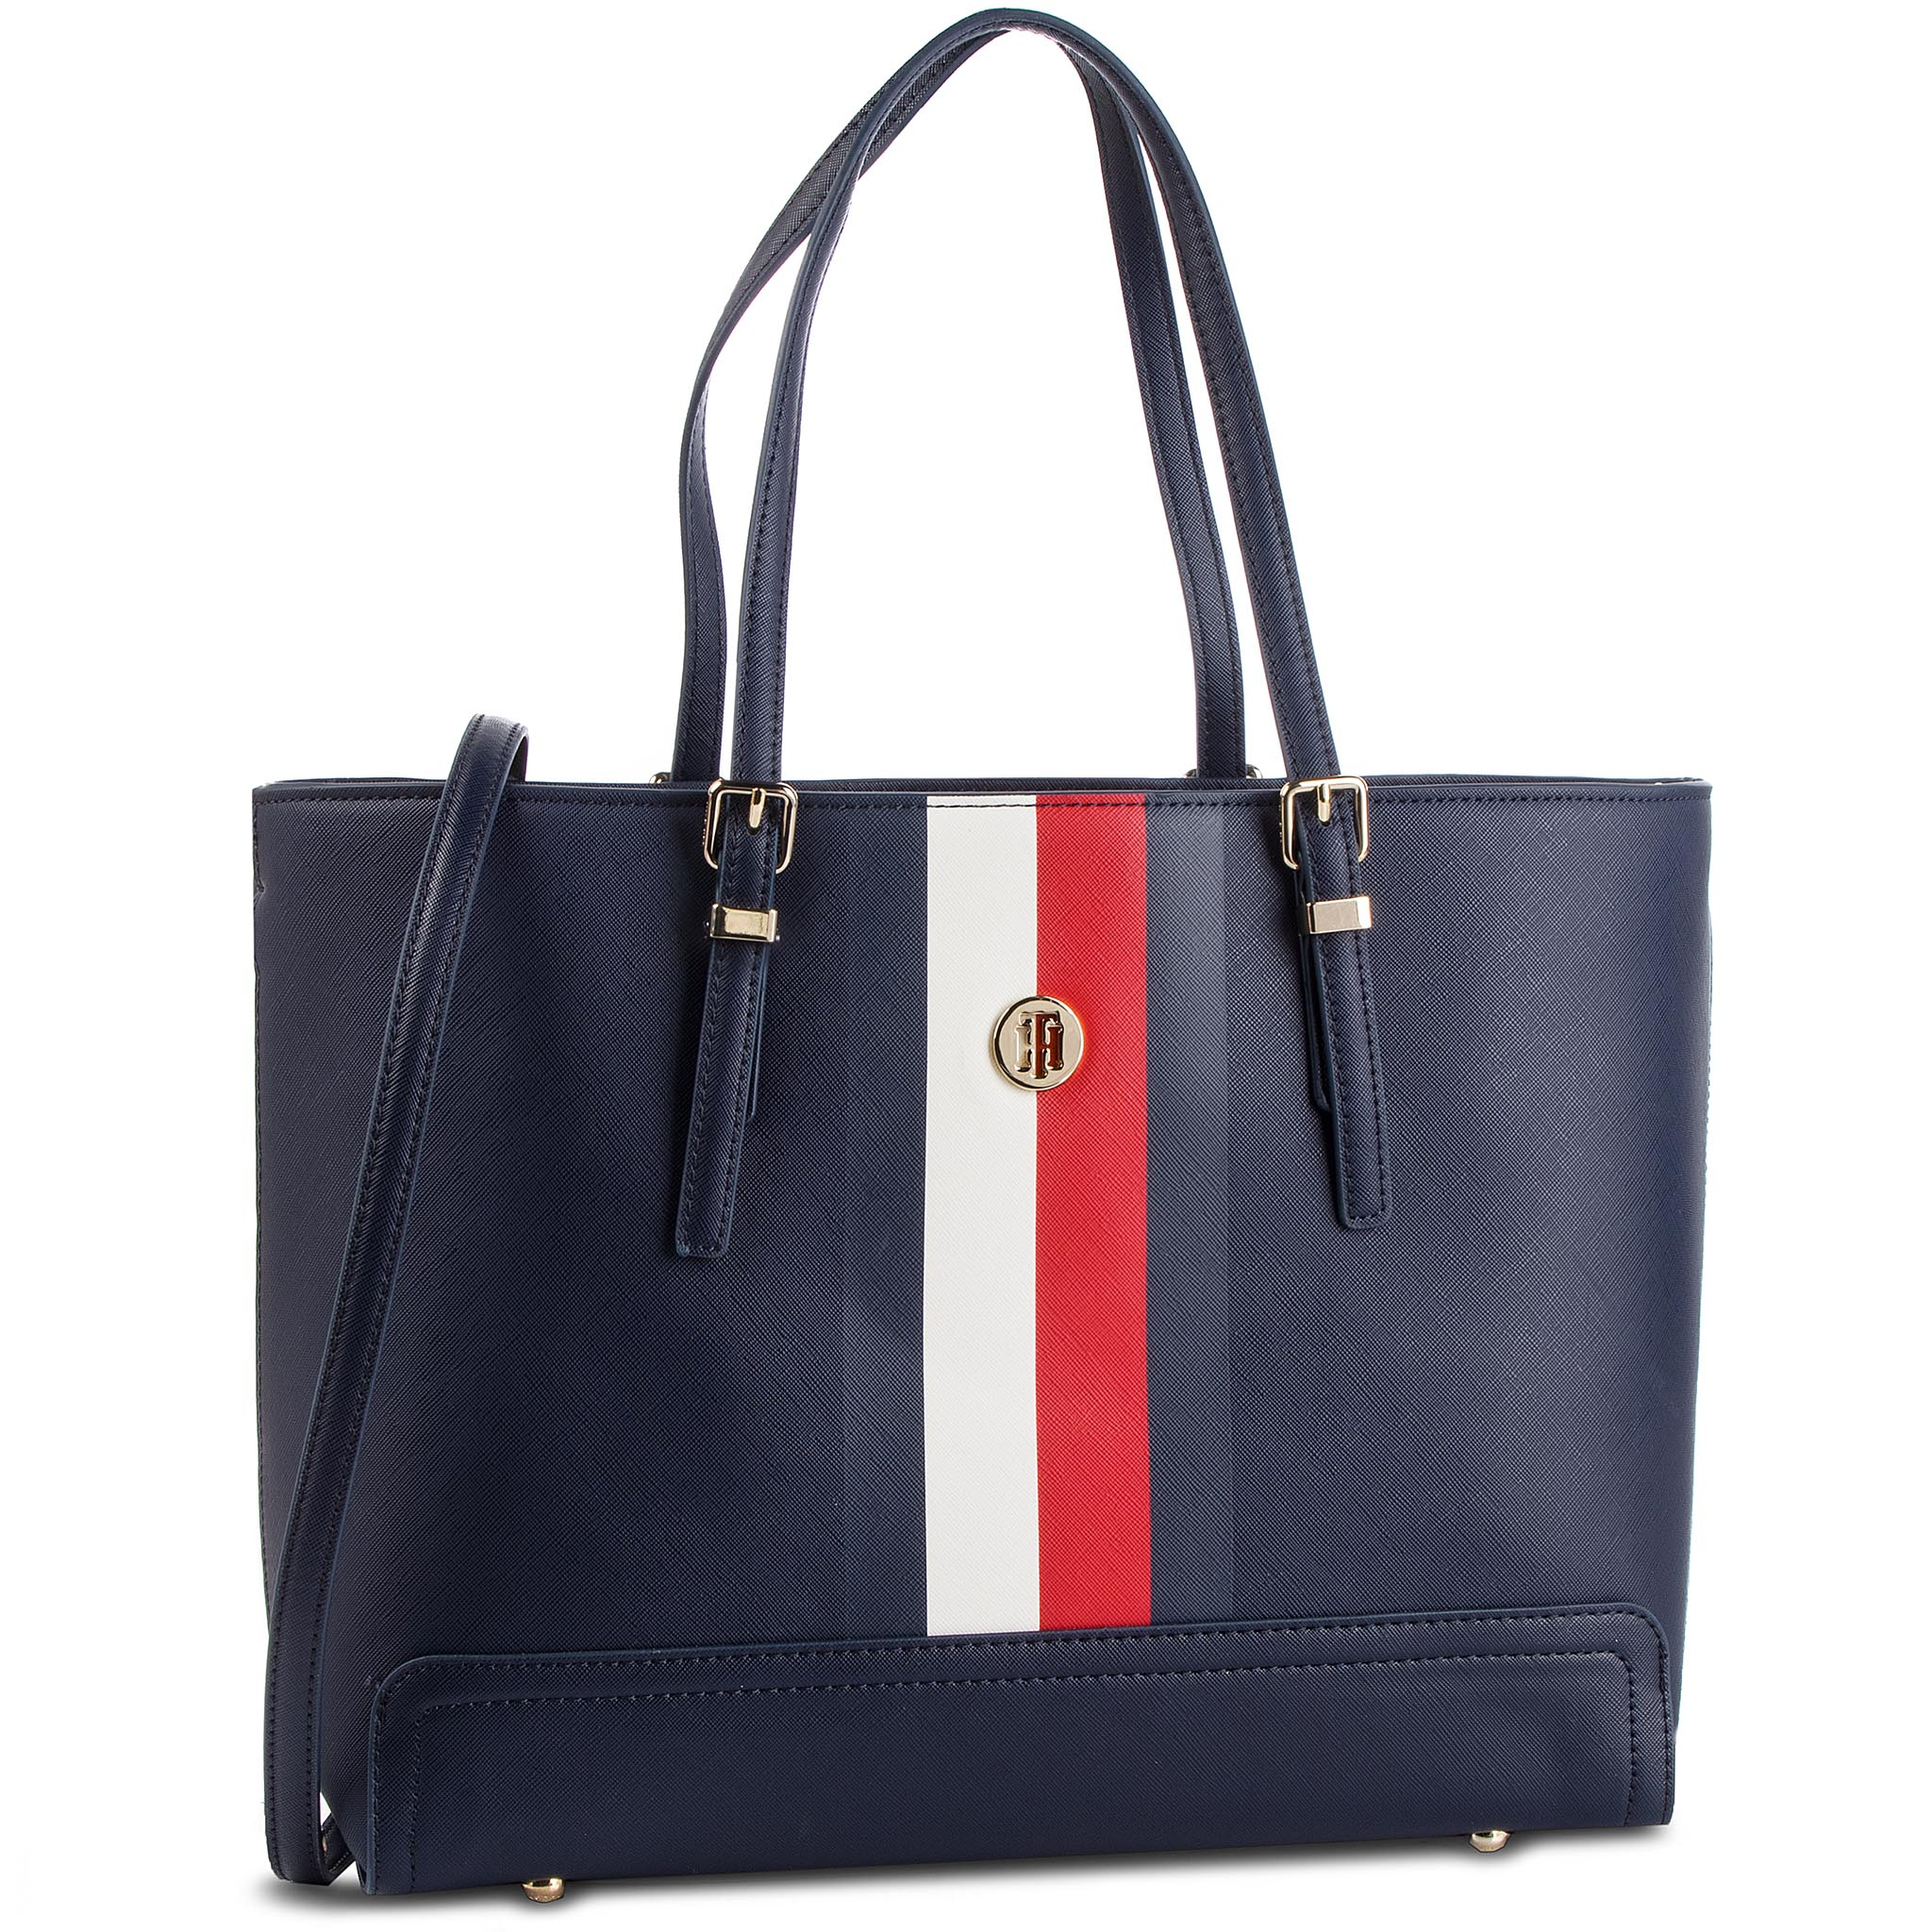 ee99e32873 Kabelka TOMMY HILFIGER - Honey Med Tote Corp AW0AW06867 901